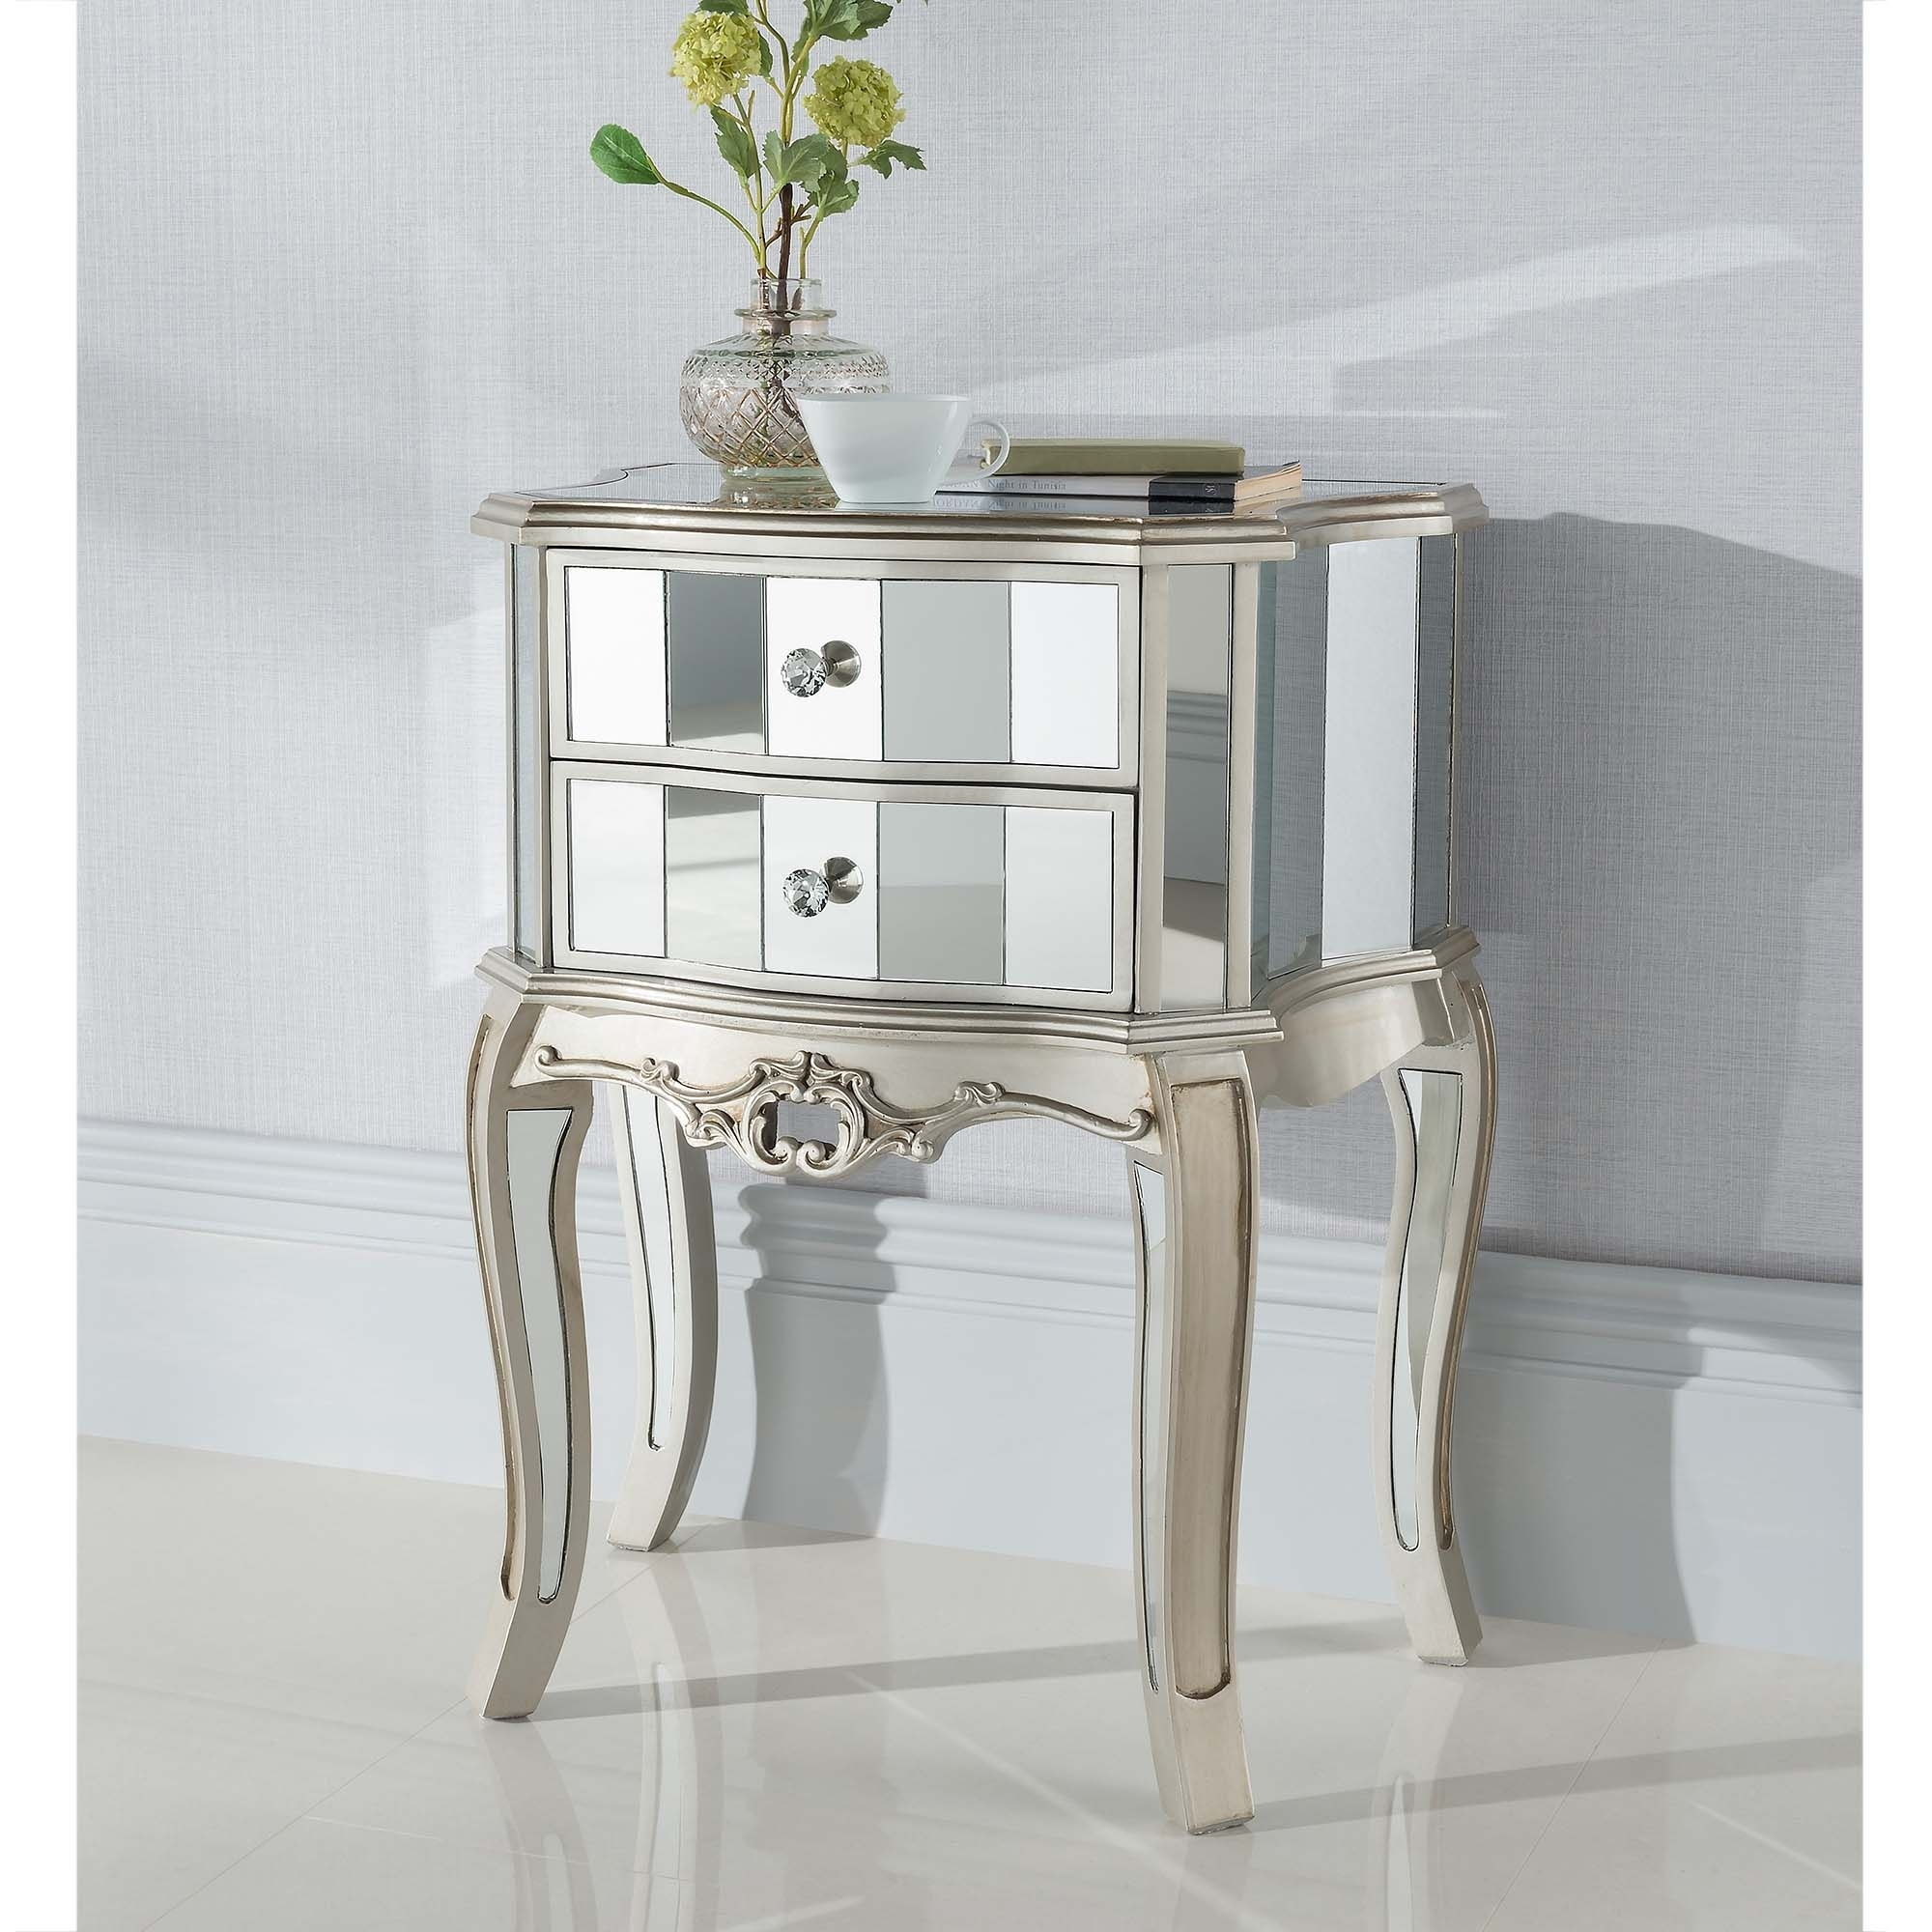 Working Well Alongside Our Shabby Chic Furniture Comes